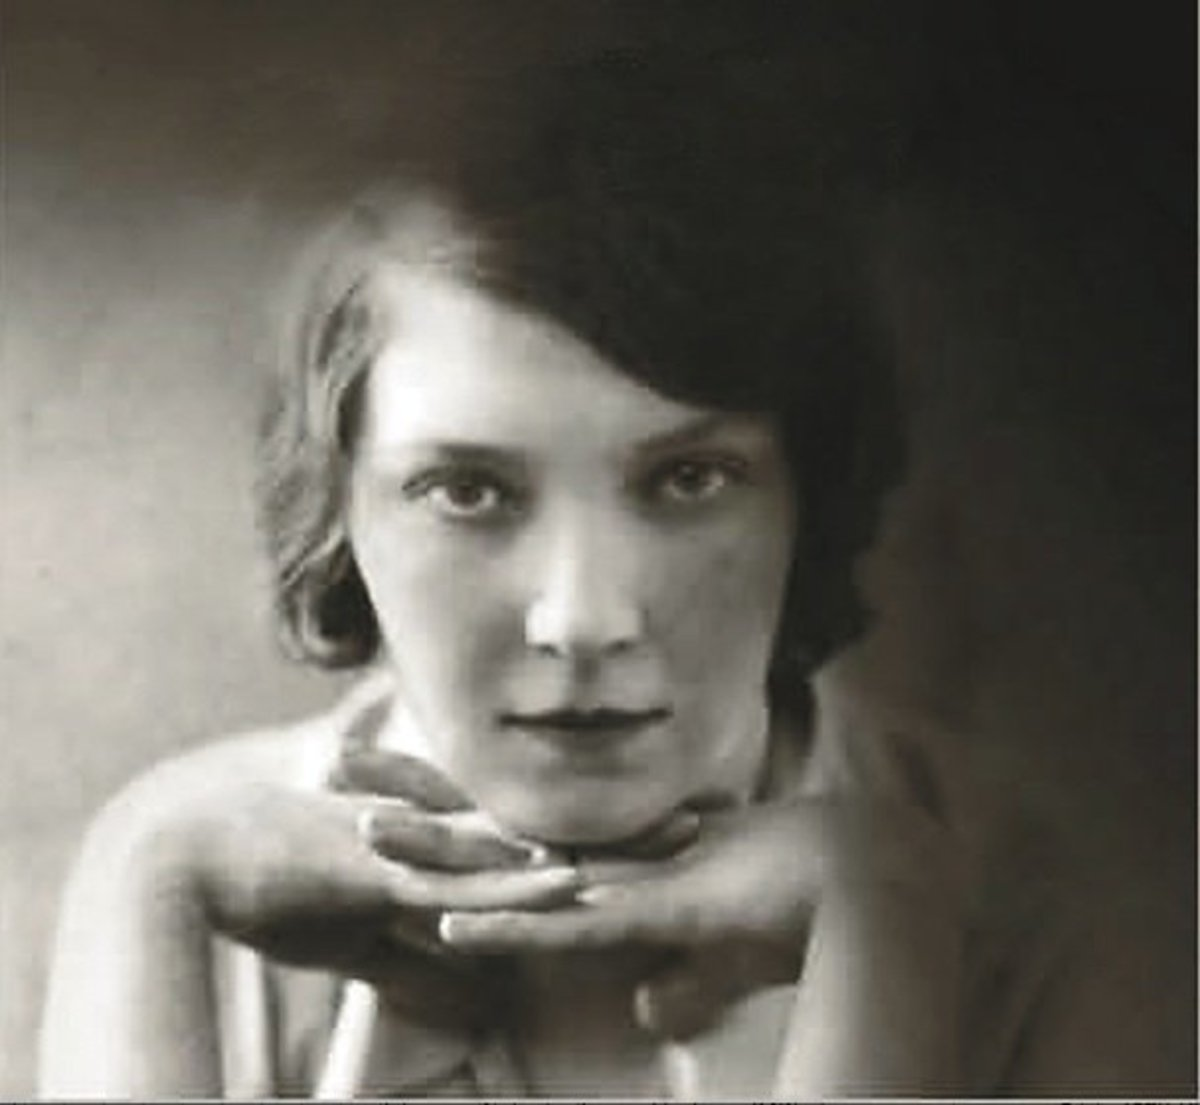 Jean Rhys in her youth.